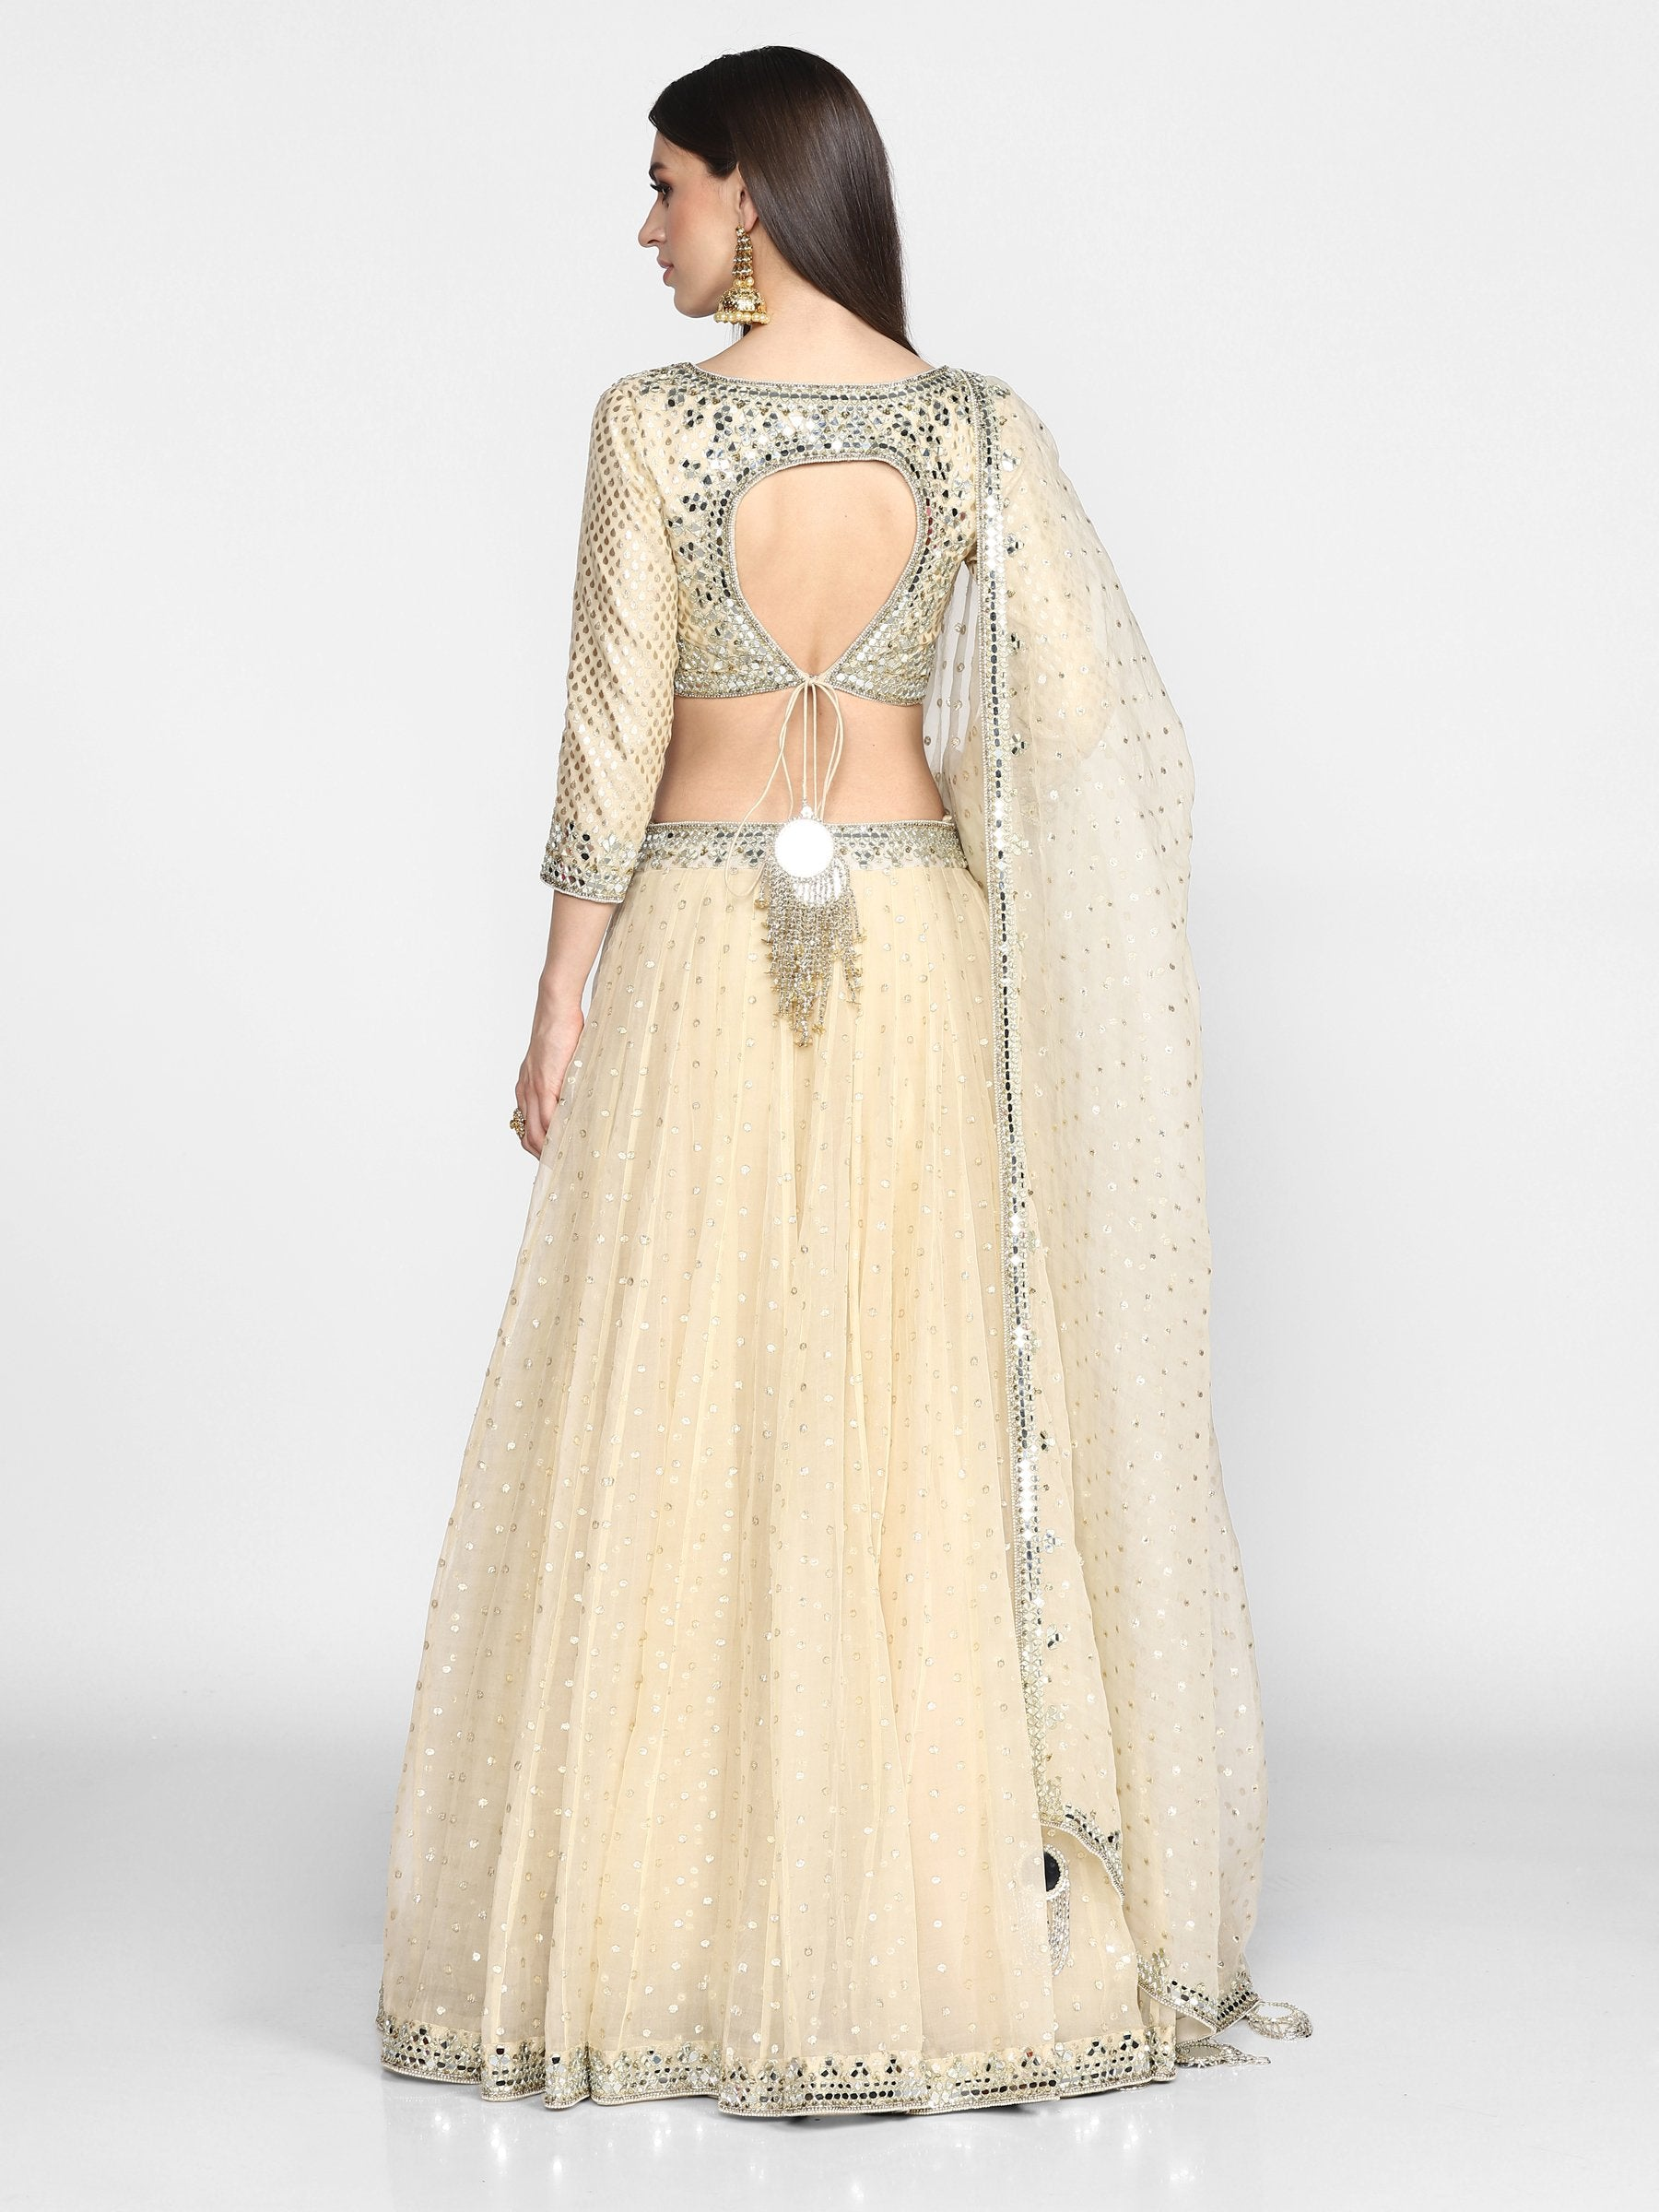 Abhinav Mishra  Beige Lehenga Set - The Grand Trunk